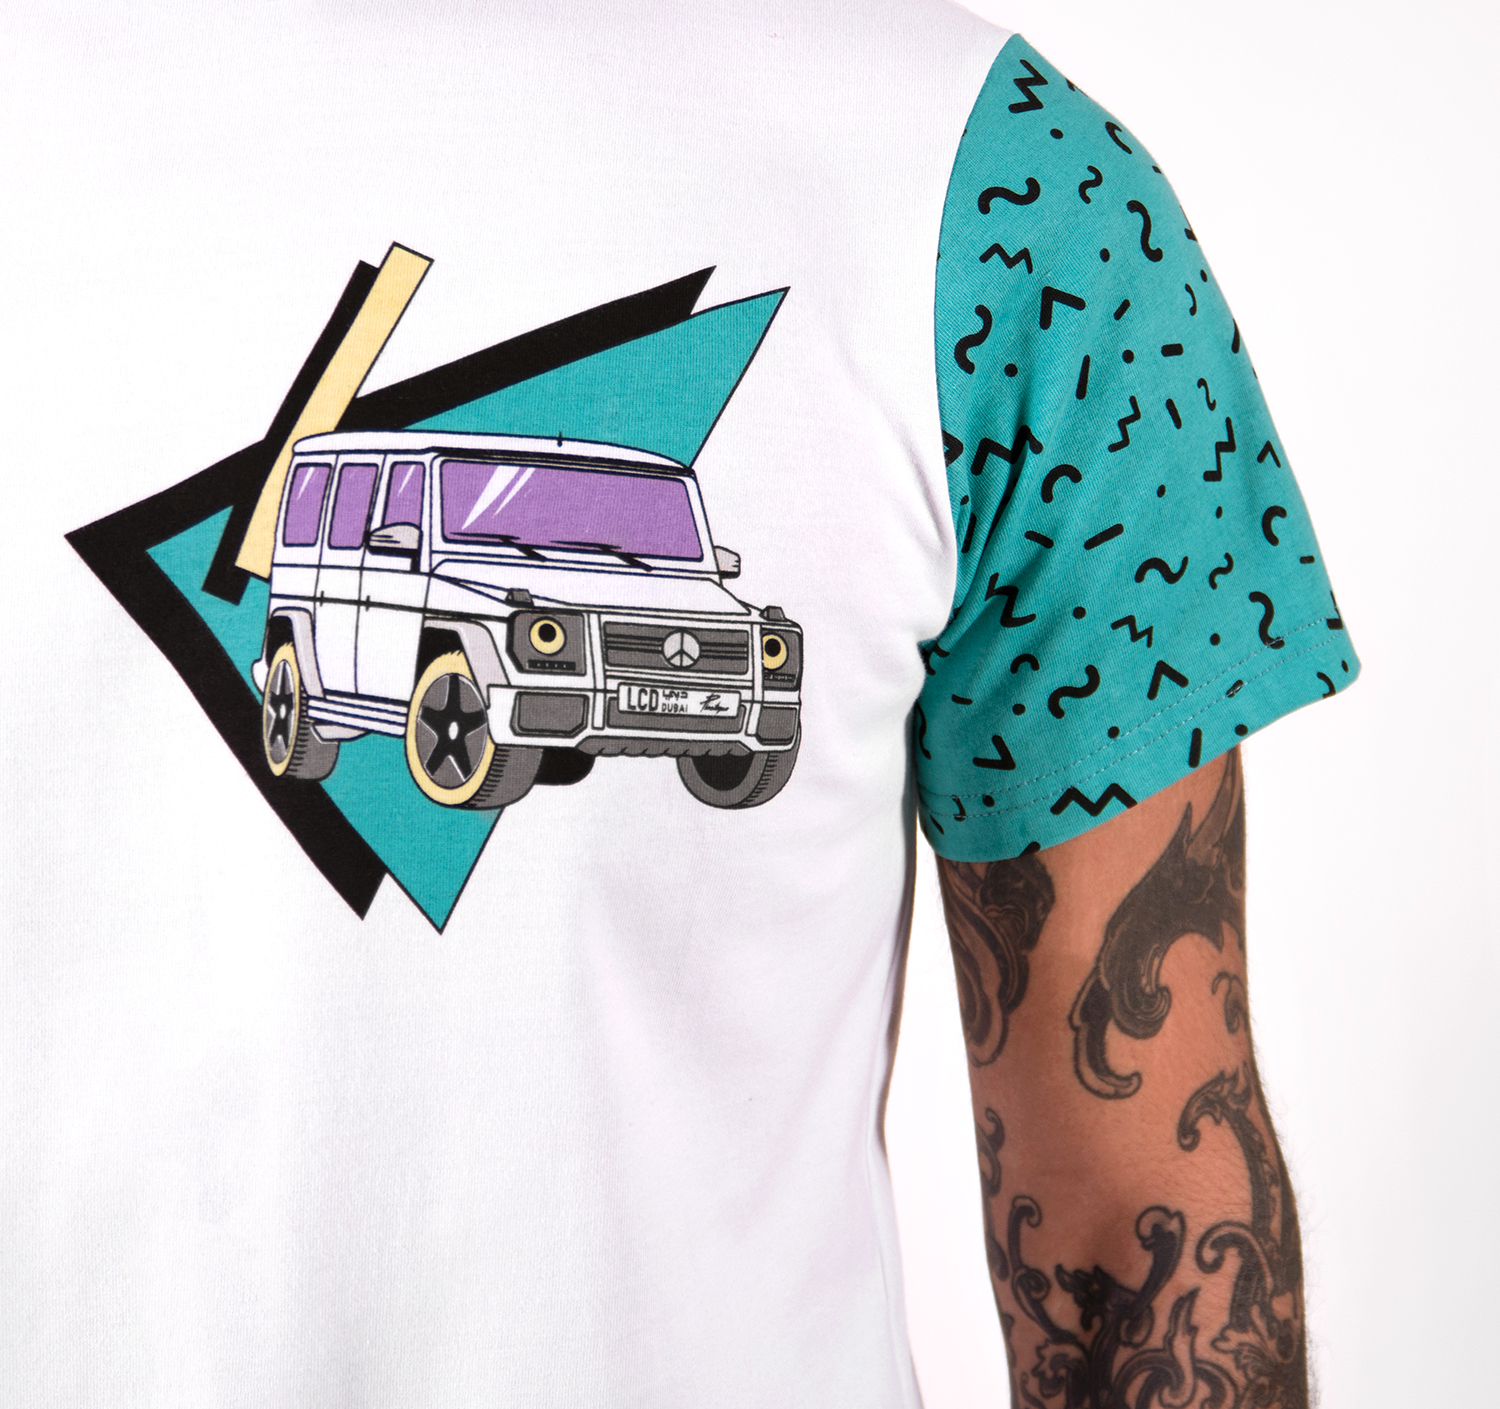 Jumeirah Cruising T-shirt by La Come Di